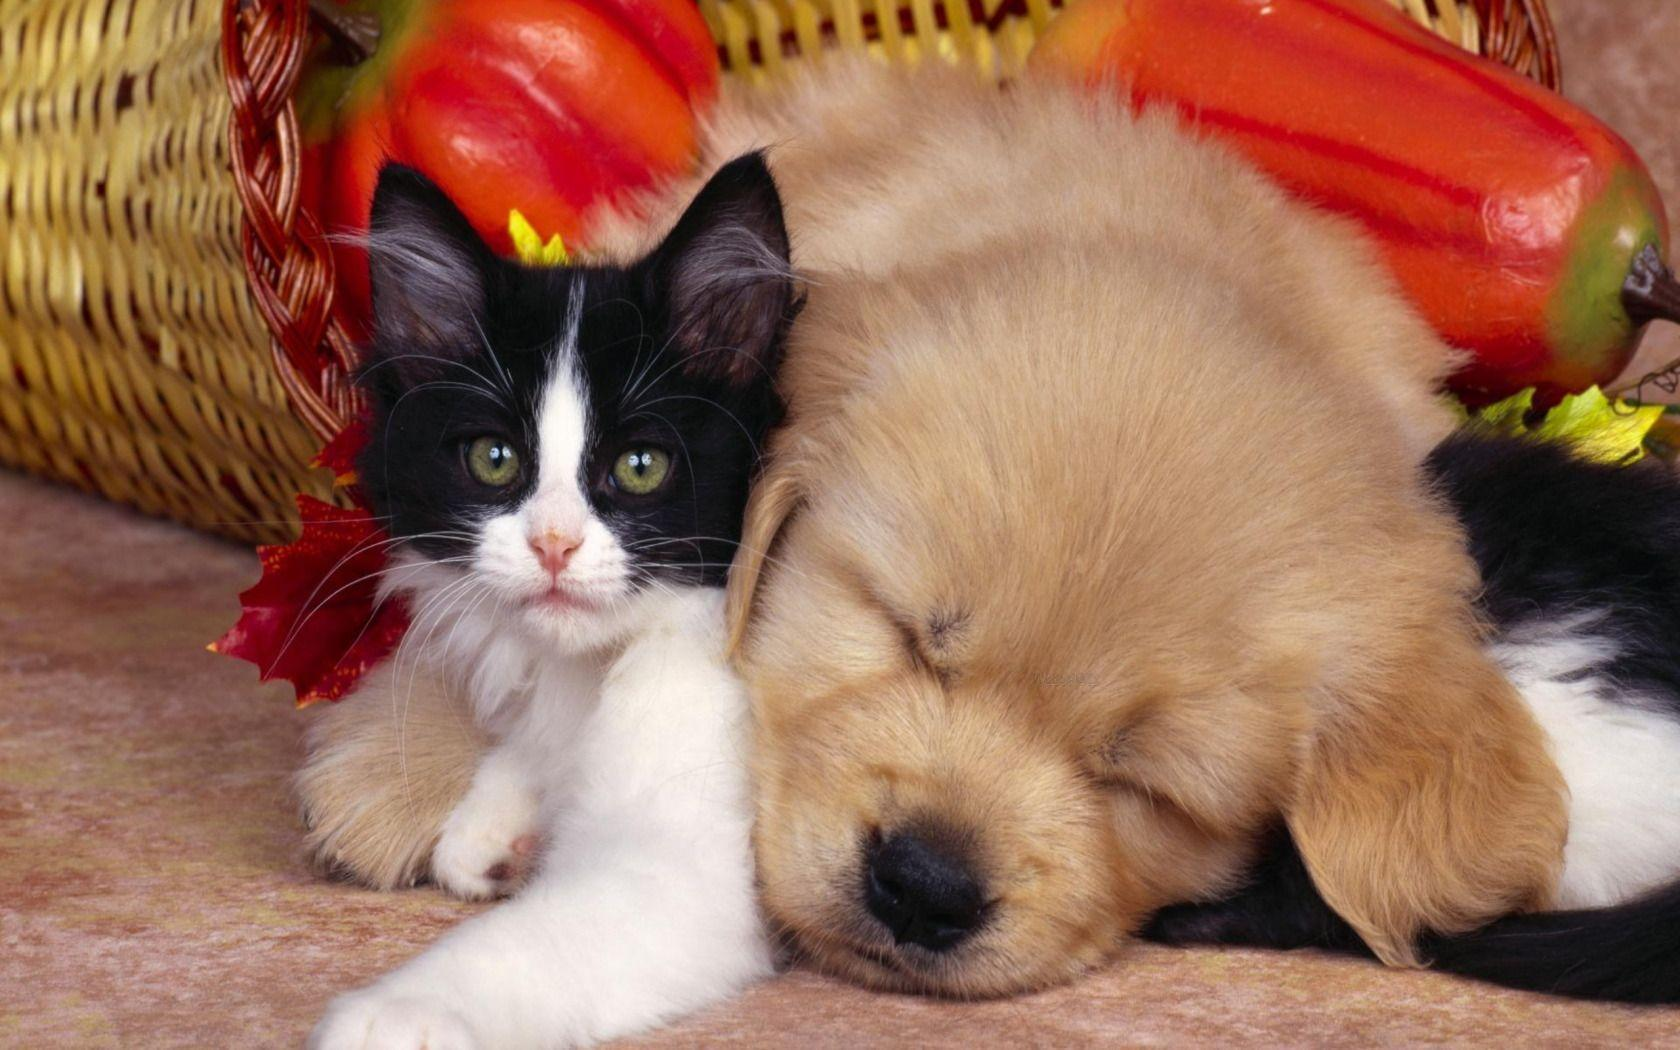 Wallpapers For > Cute Puppy And Kitten Wallpapers